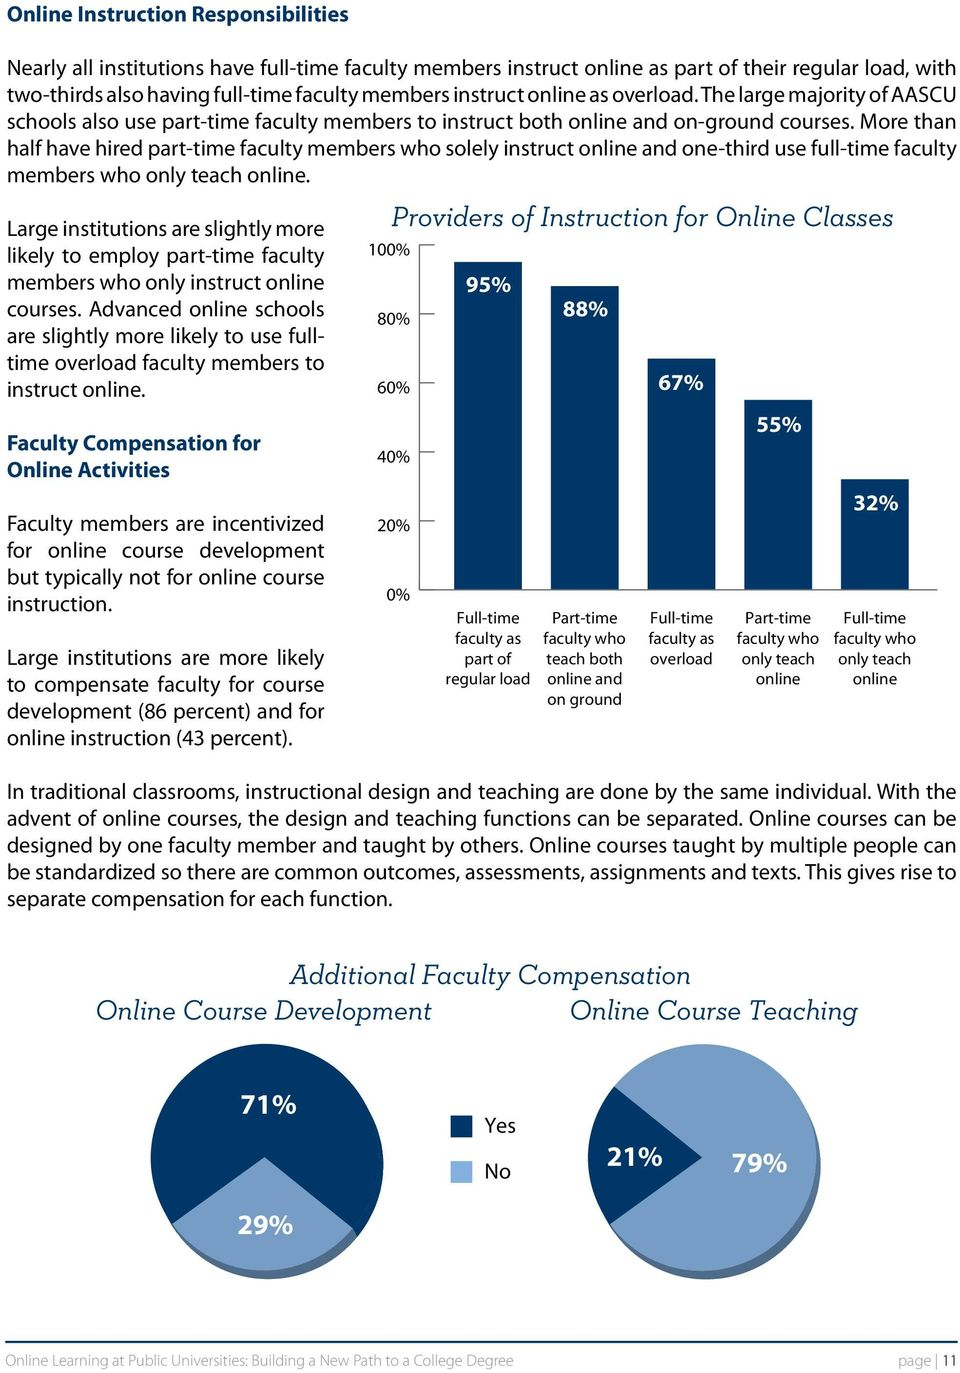 More than half have hired part-time faculty members who solely instruct online and one-third use full-time faculty members who only teach online.